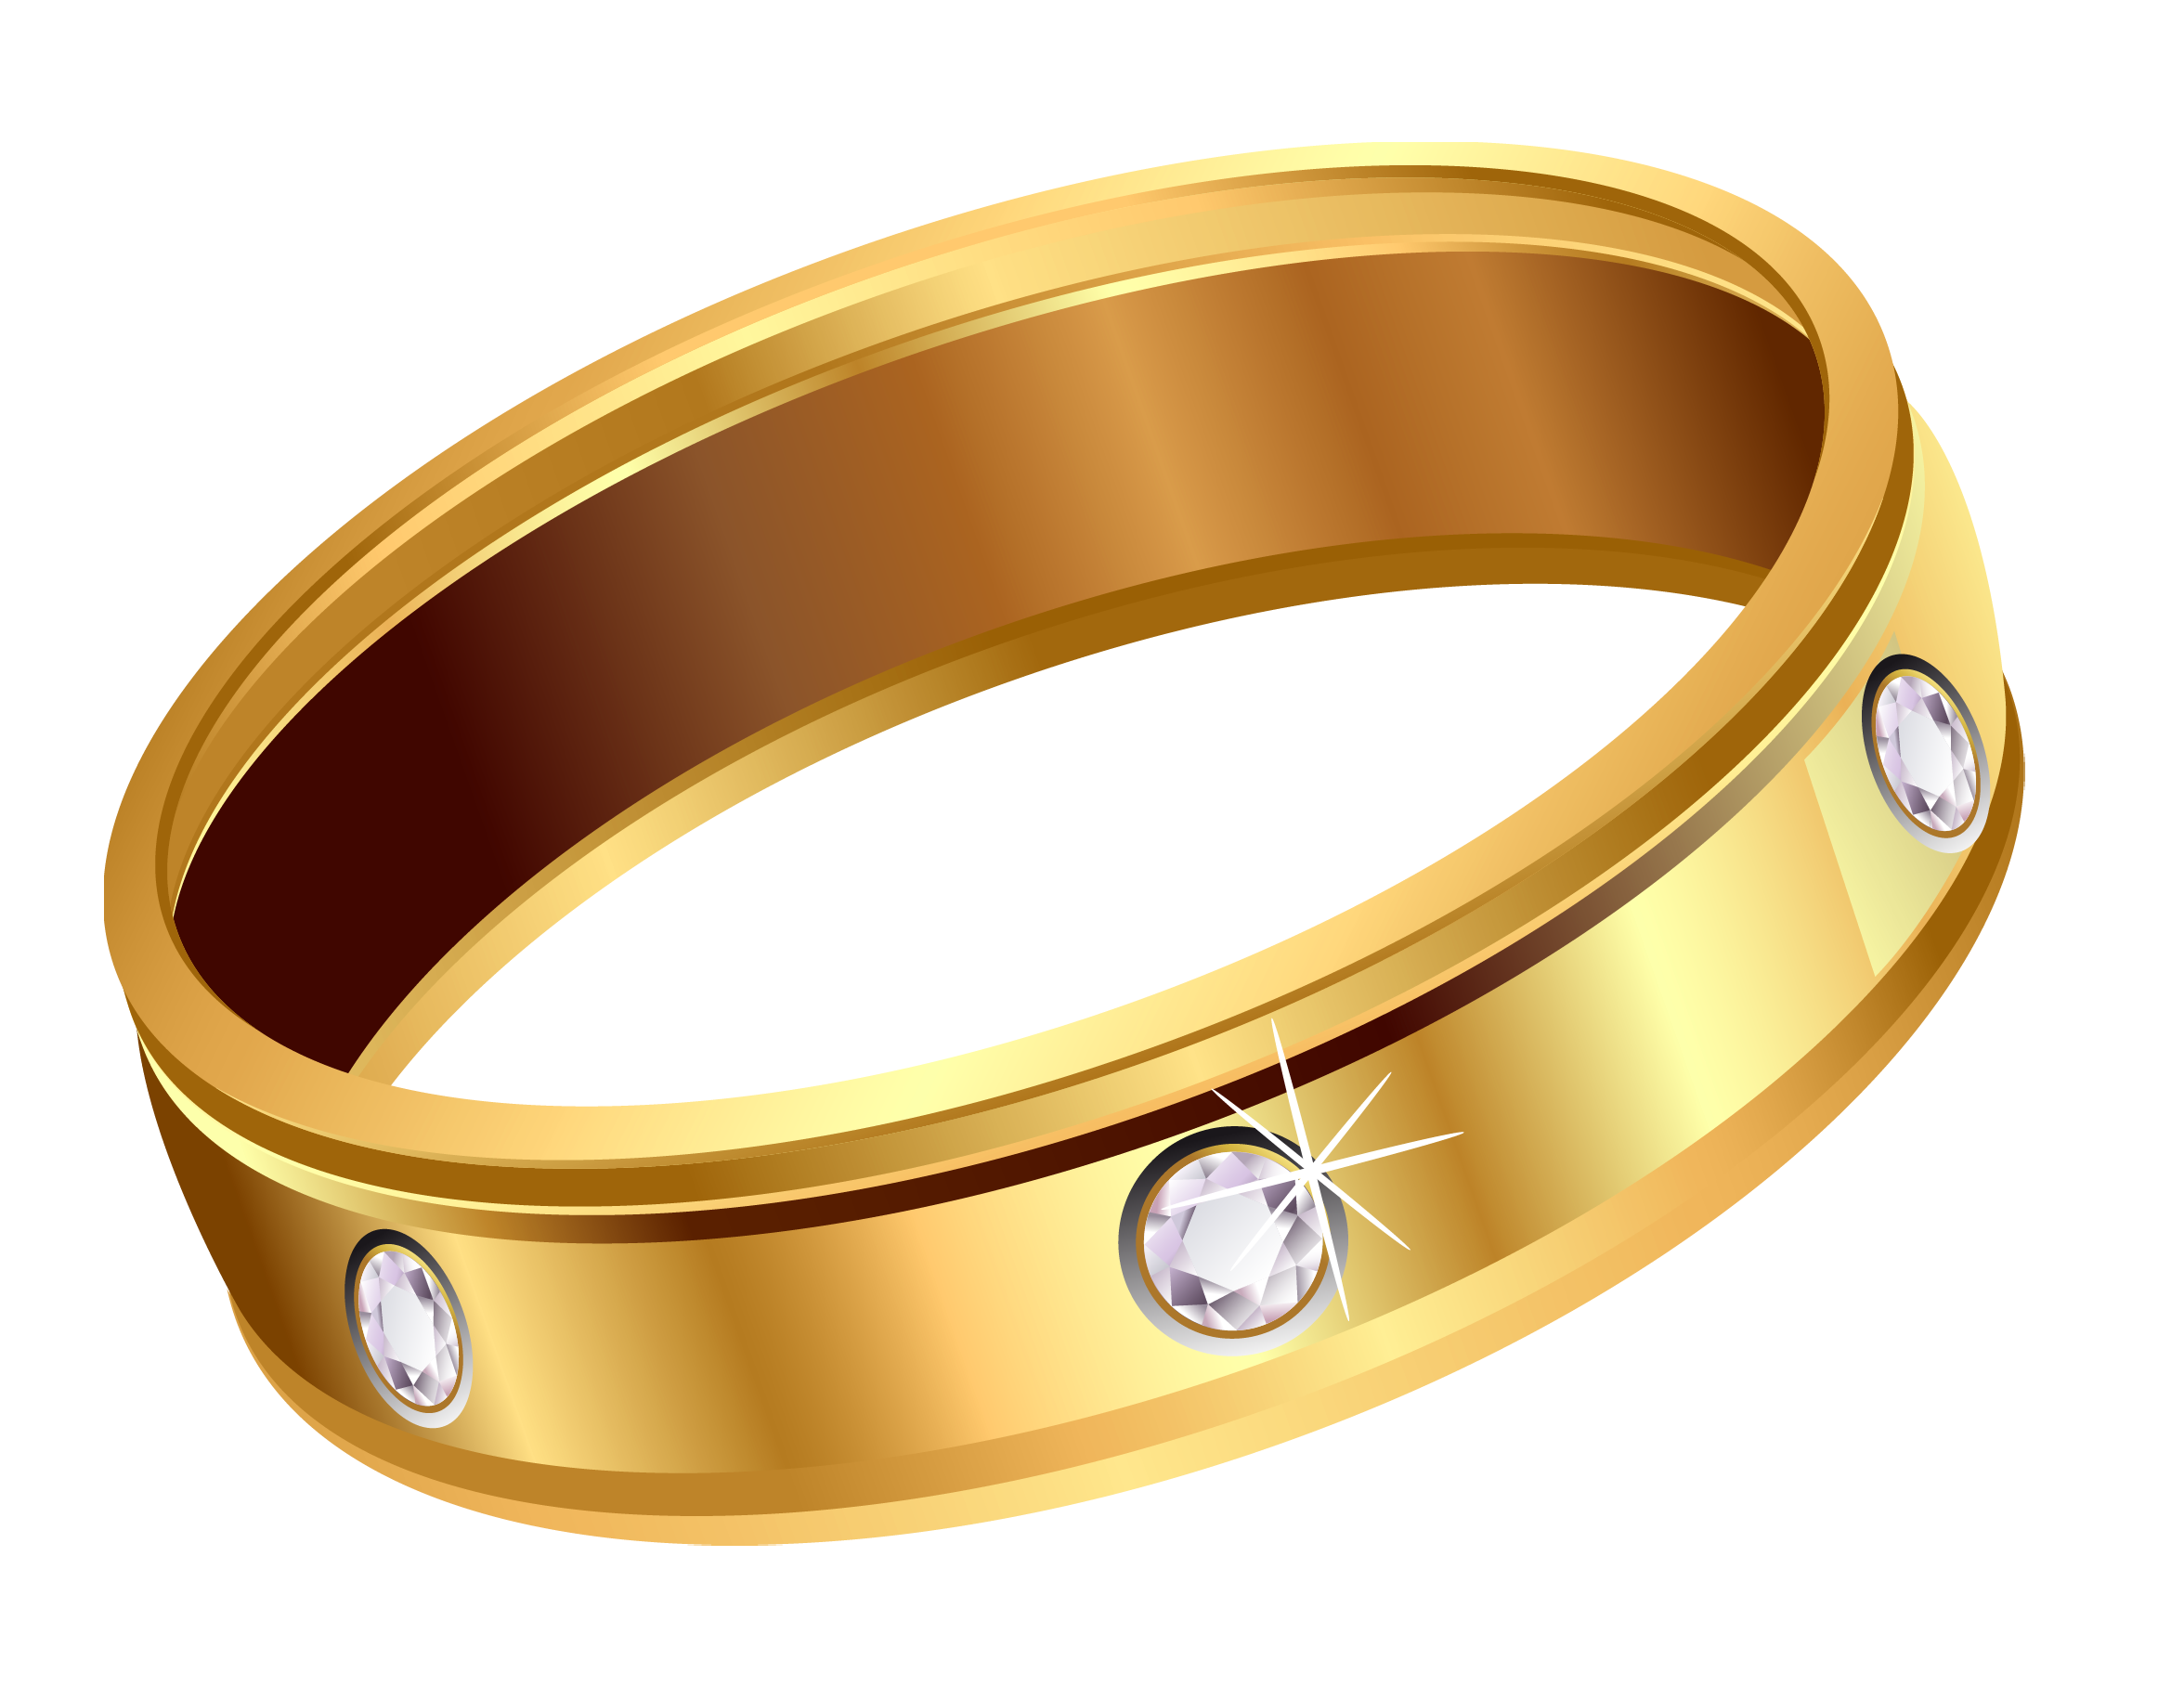 2352x1830 Transparent Gold Ring With Diamonds Png Clipartu200b Gallery